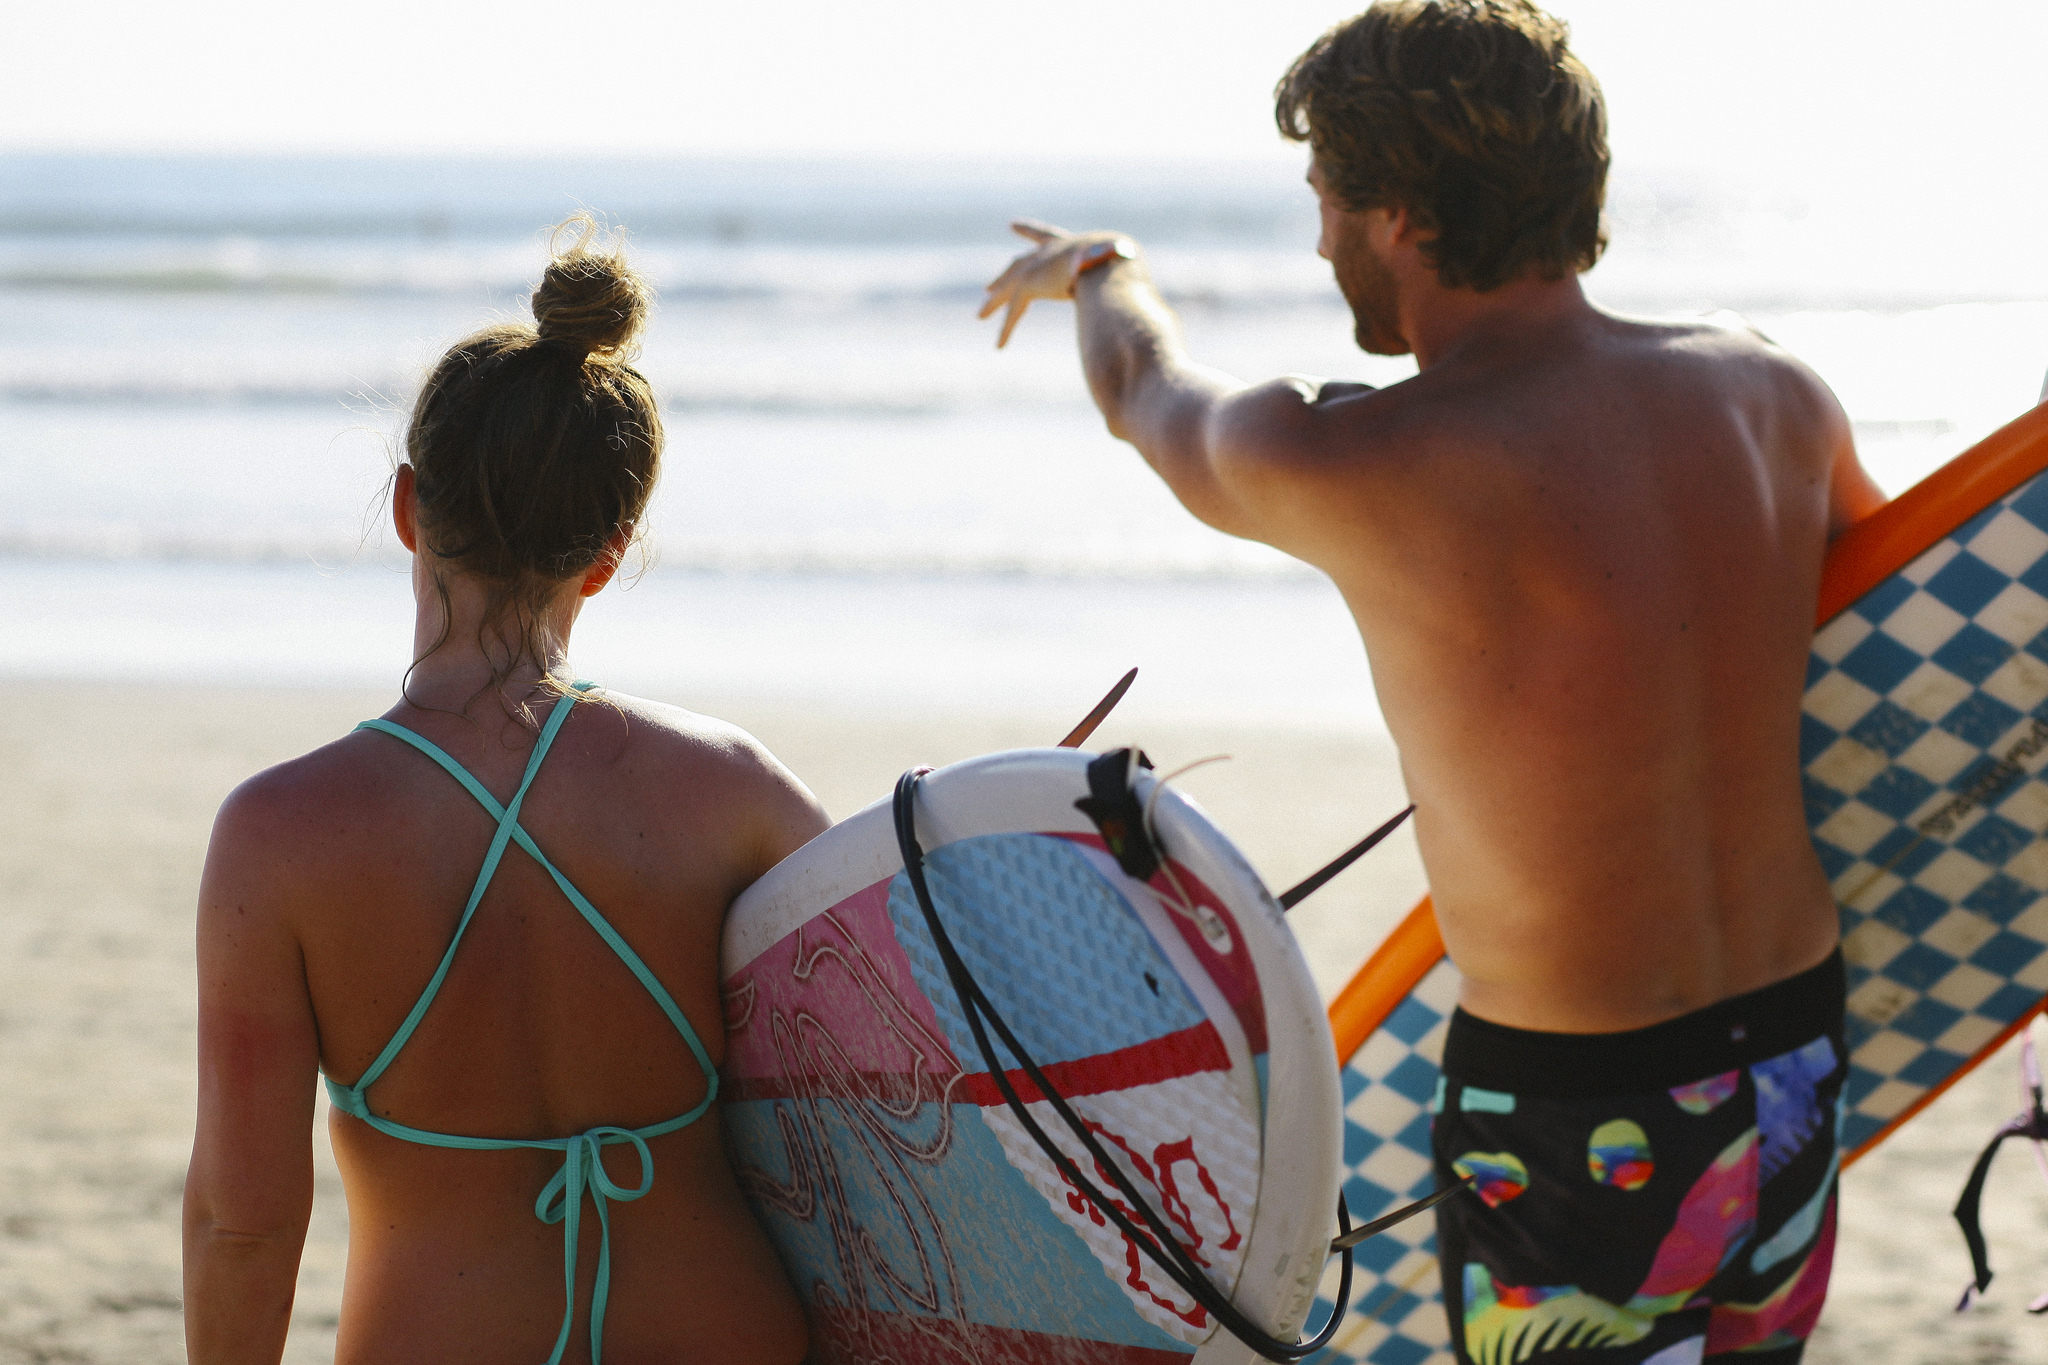 Experienced surf coaches